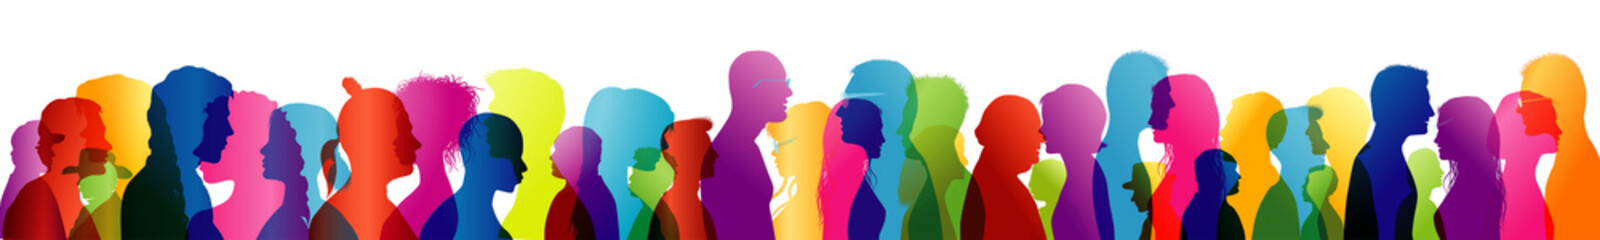 Group of people talking. Crowd talking. Speak. To communicate. Colored silhouette profiles Wall mural